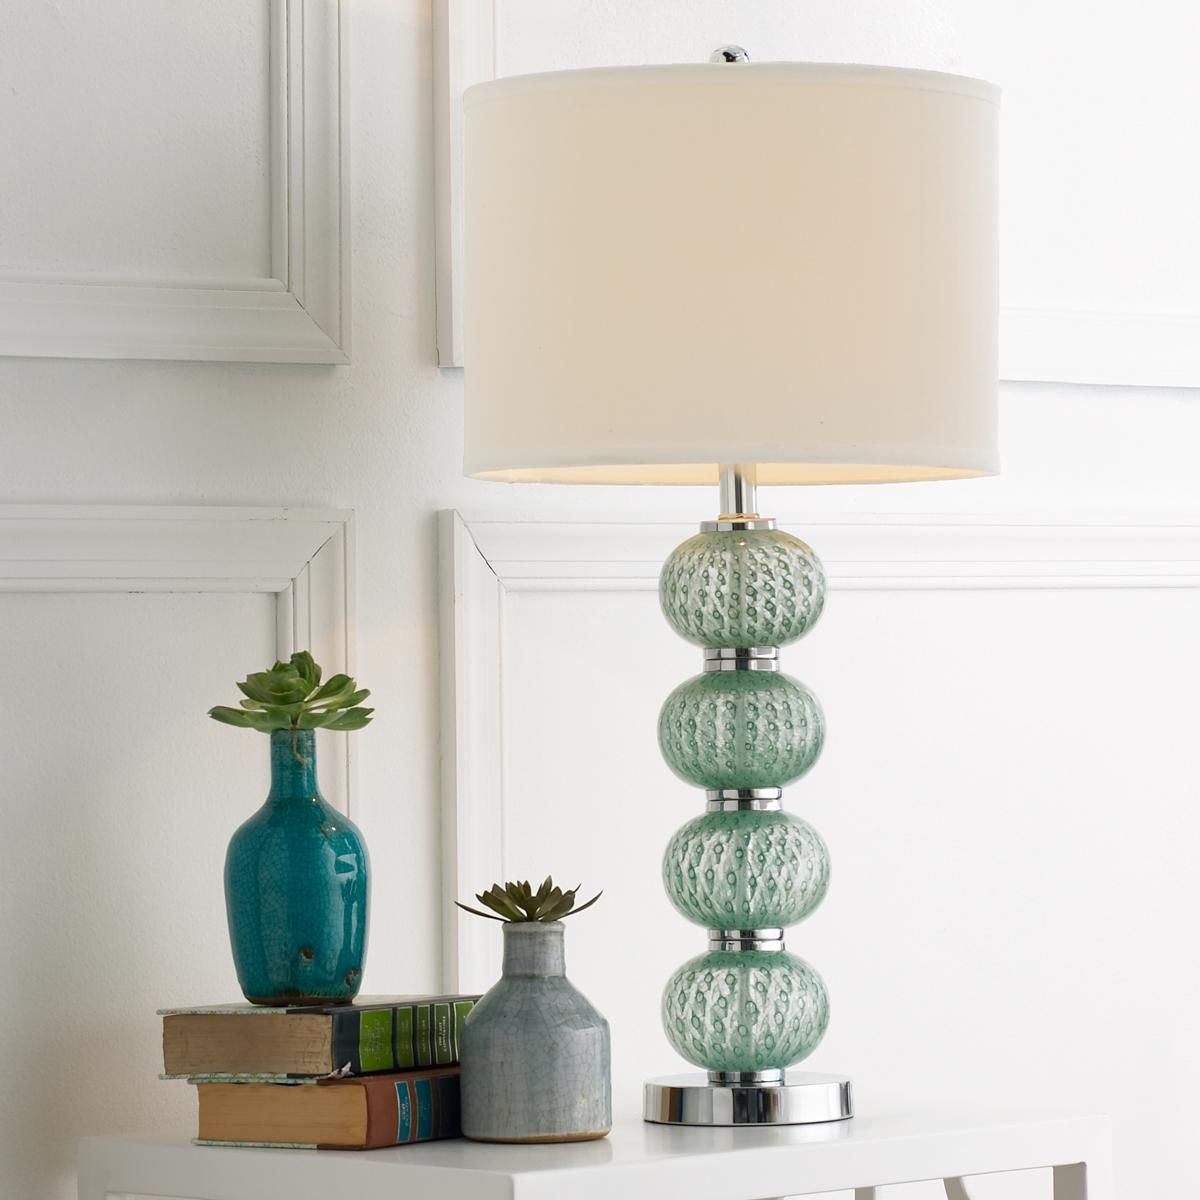 Peacock Aqua Glass Ball Table Lamp Four Soft Balls Are Stacked On A Shiny